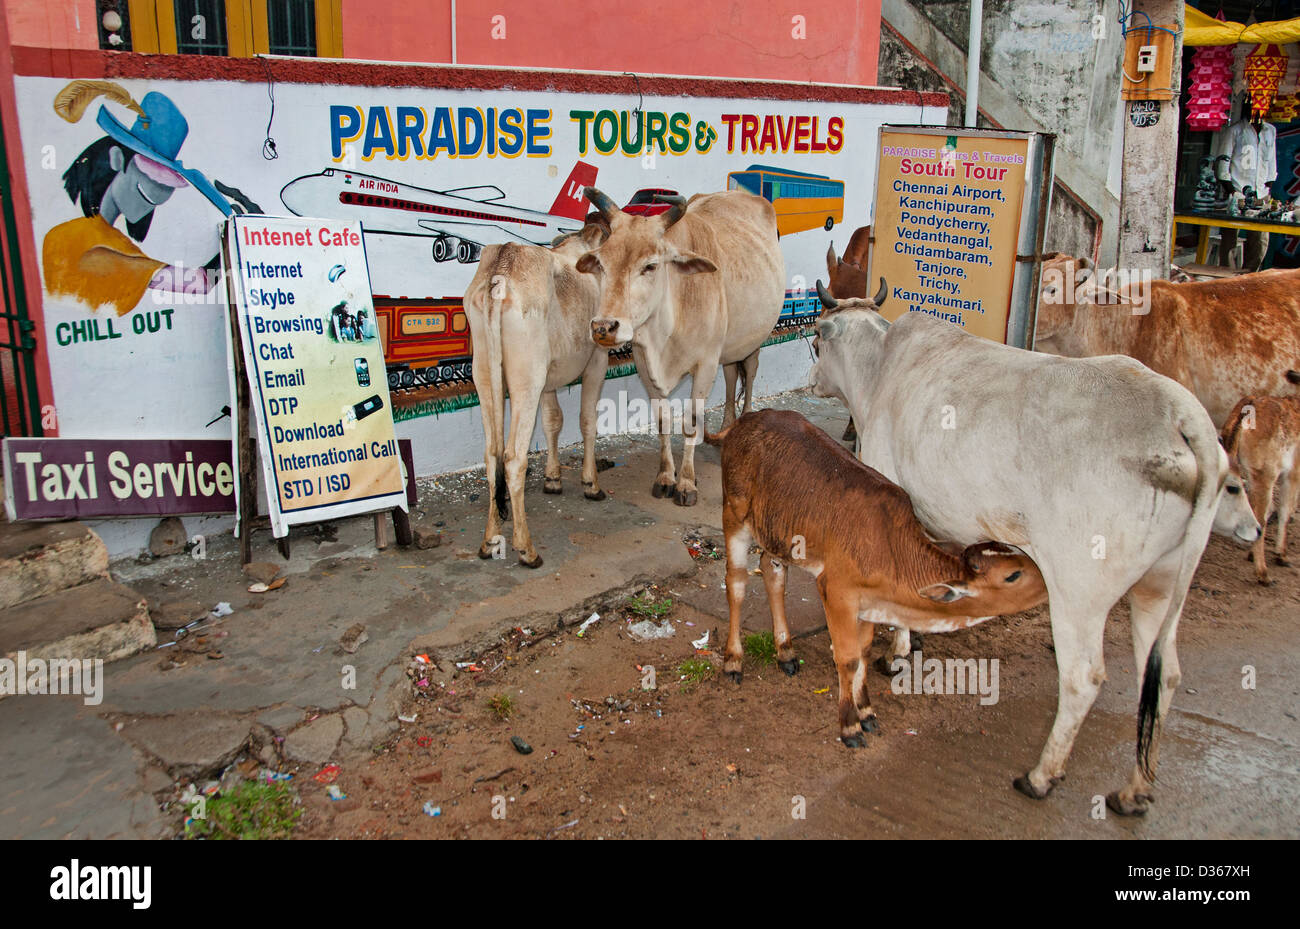 Holy Cows Travel agency Travels Paradise Tours Covelong ( Kovalam or Cobelon ) India Tamil Nadu - Stock Image